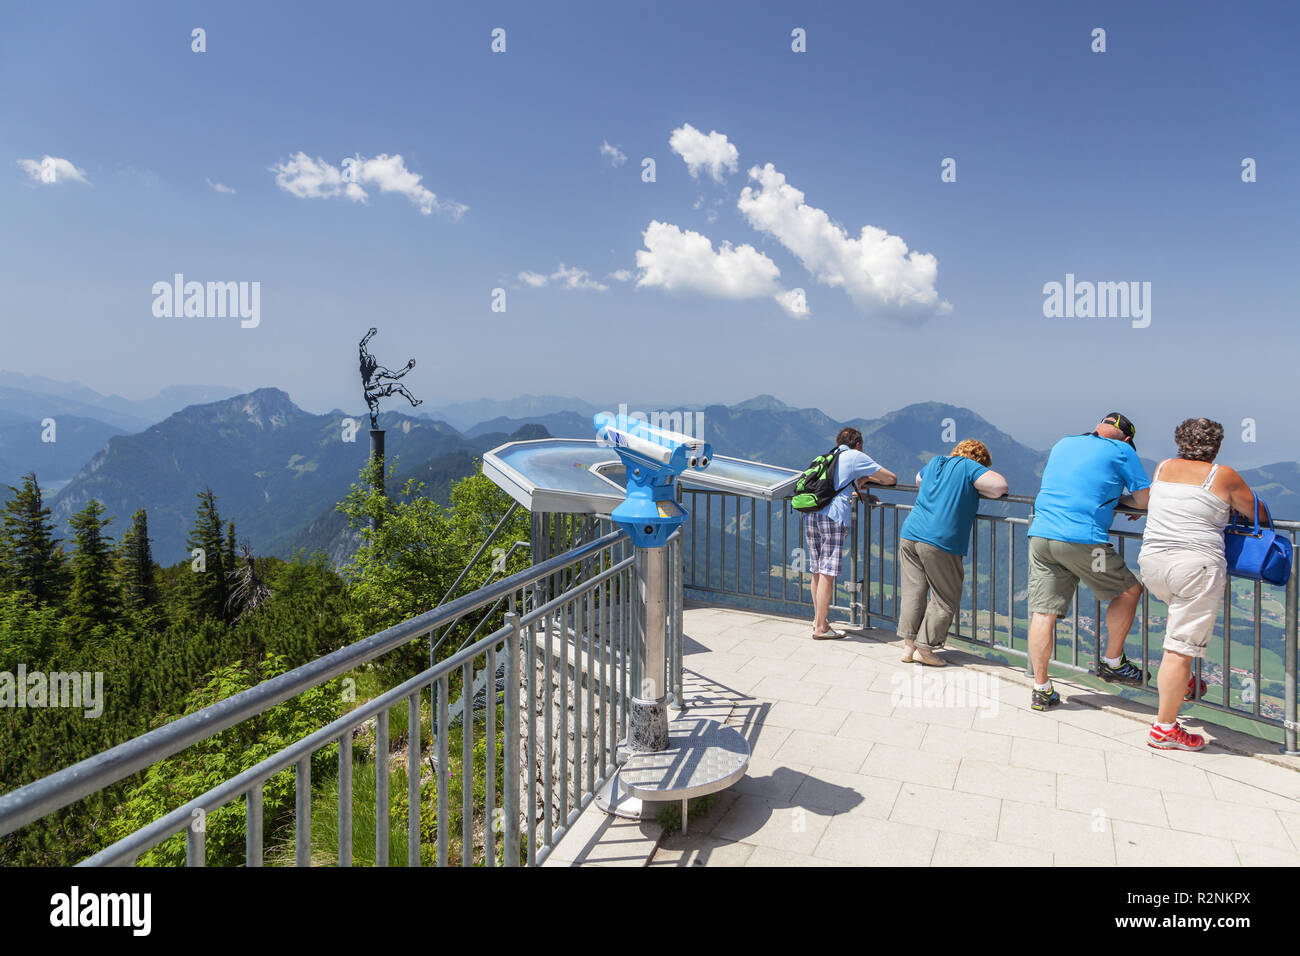 Viewpoint with artwork Himmelskletterer by Angerer the Younger at the top station of the Rauschbergbahn on the Rauschberg, Ruhpolding, Chiemgau Alps, Chiemgau, Upper Bavaria, Bavaria, Southern Germany, Germany, Europe - Stock Image